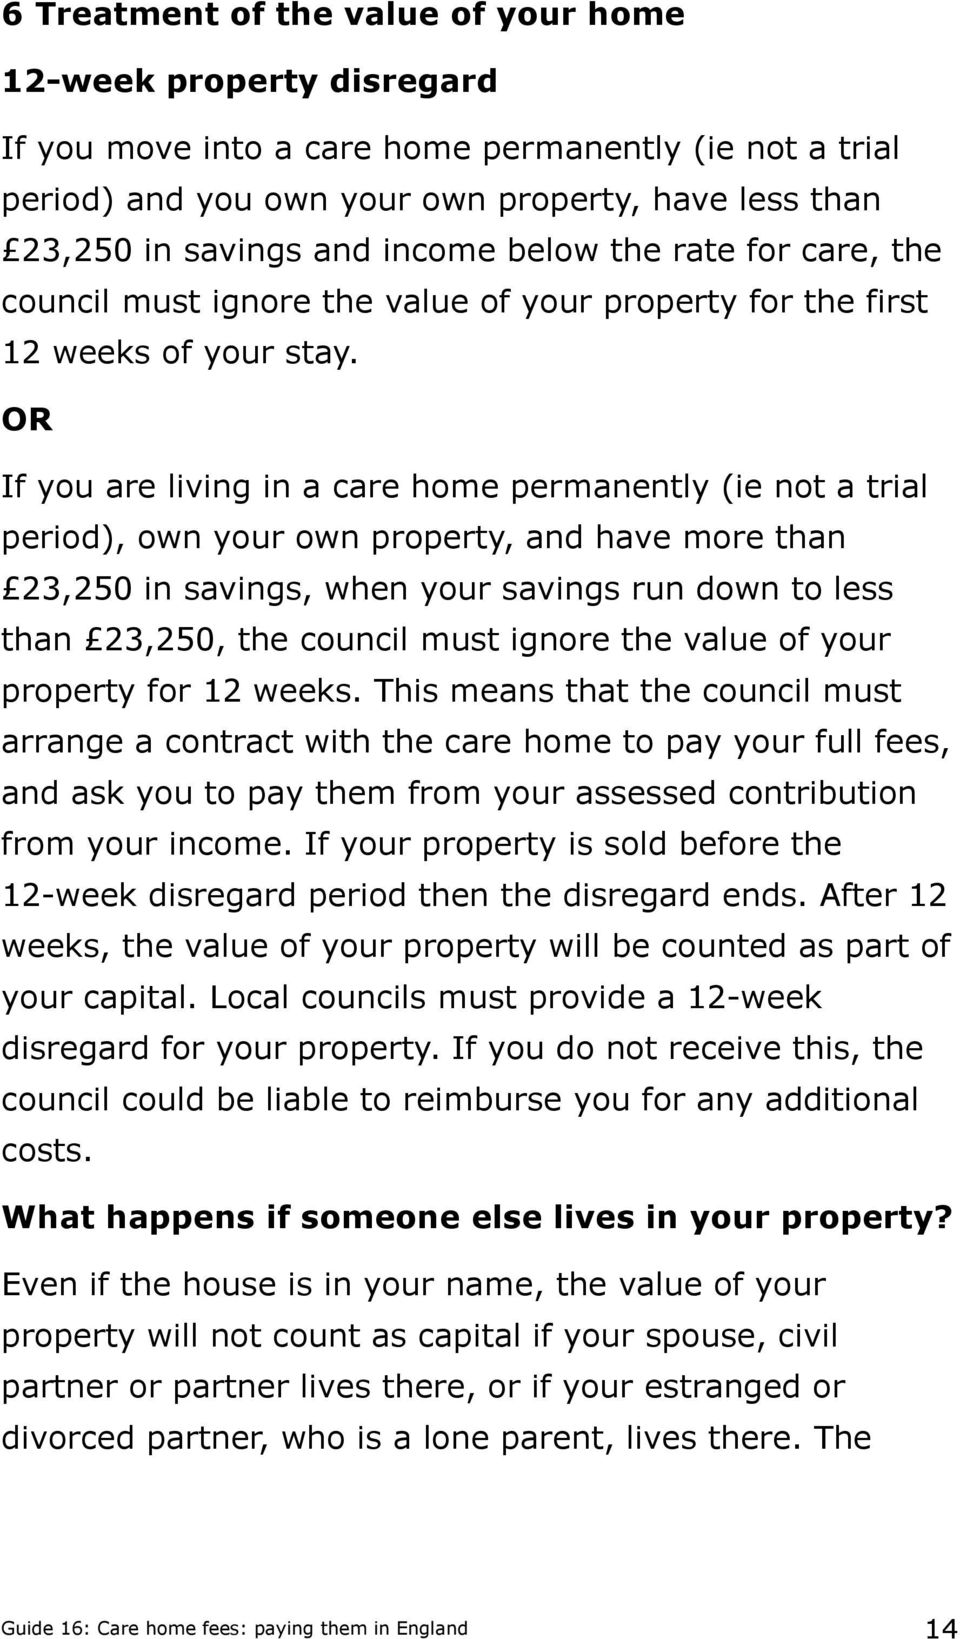 OR If you are living in a care home permanently (ie not a trial period), own your own property, and have more than 23,250 in savings, when your savings run down to less than 23,250, the council must